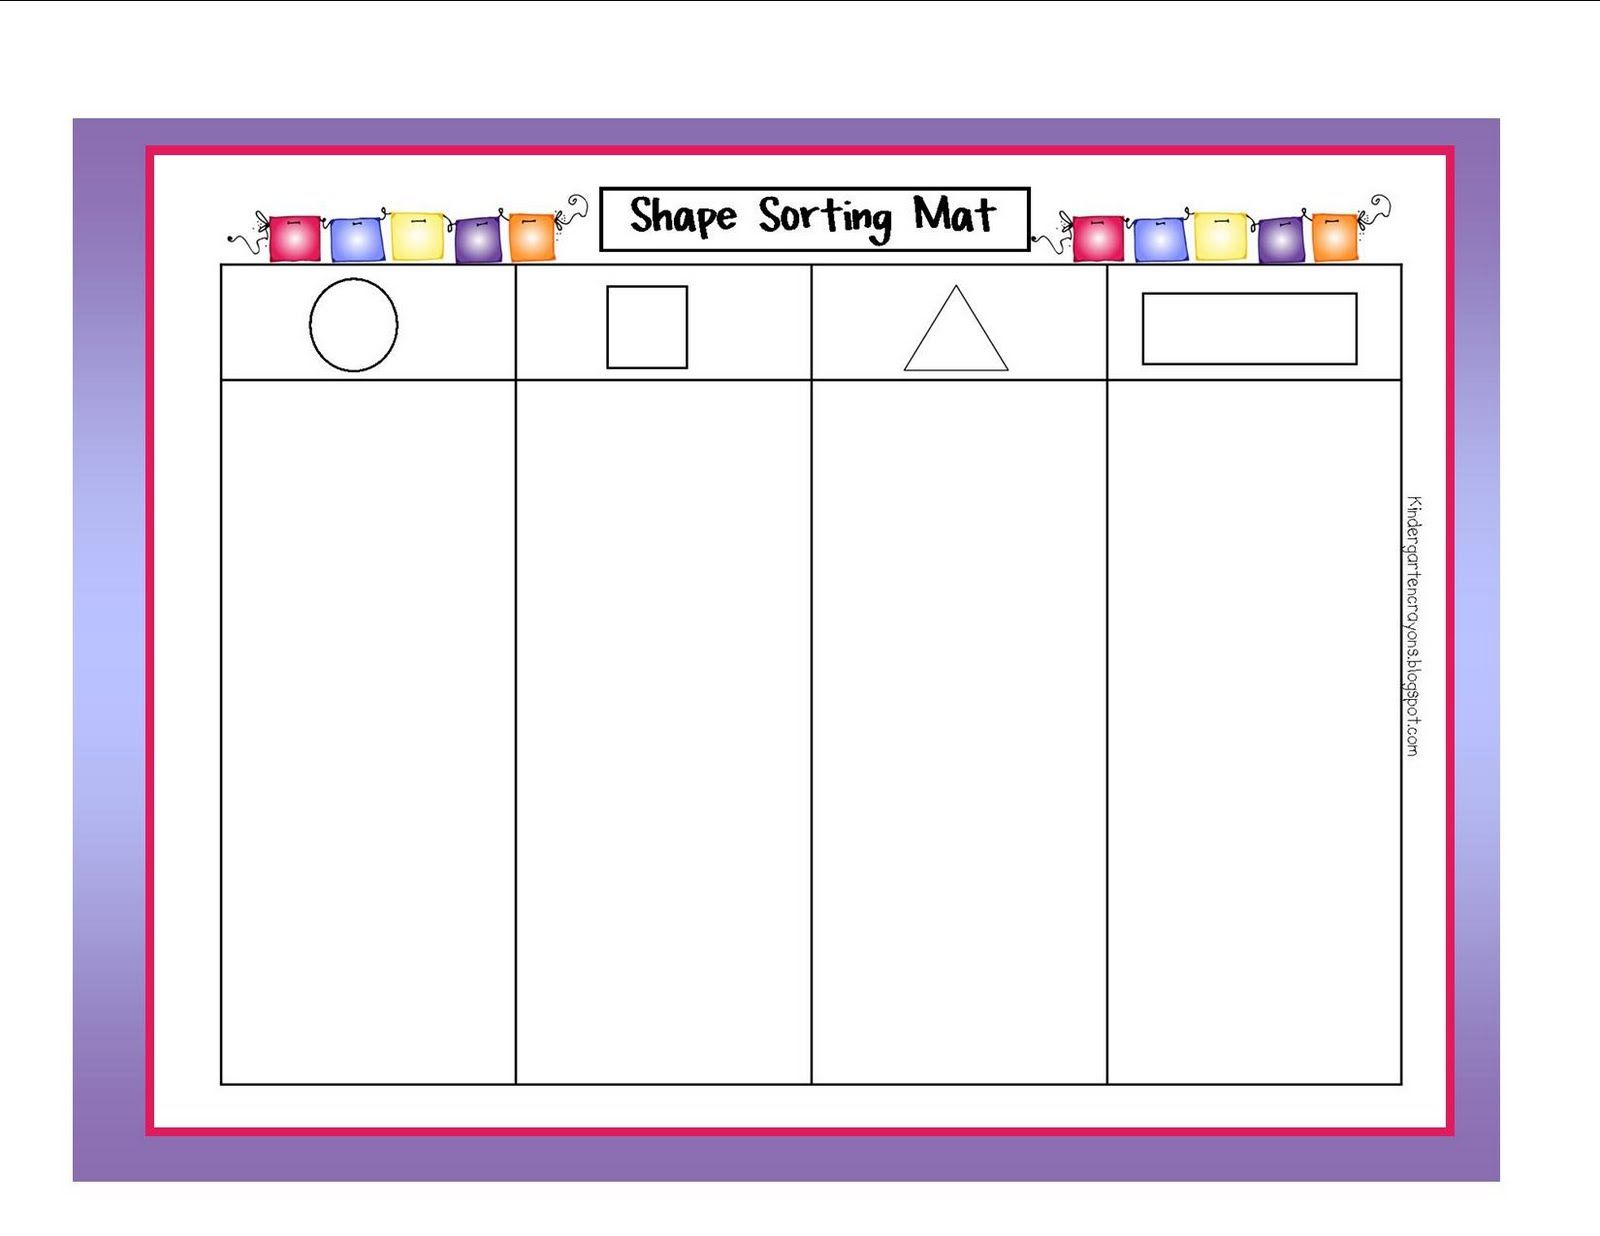 worksheet Shape Sorting Worksheet For Kindergarten sorting by size worksheets kindergarten crayons stomp your feet on more of my math